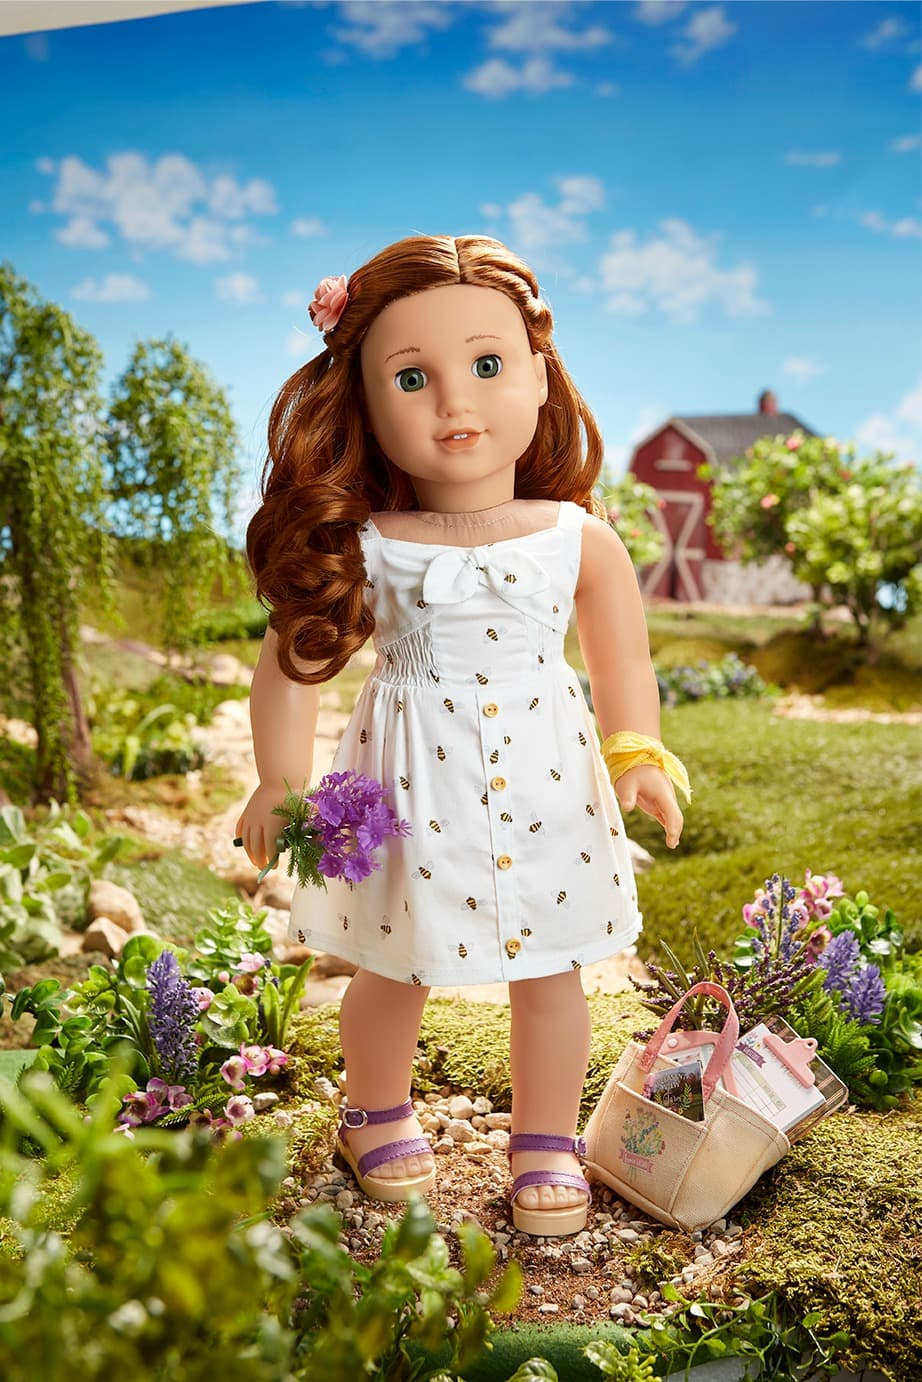 Blaire Wilson 2019 American Girl Doll of the Year